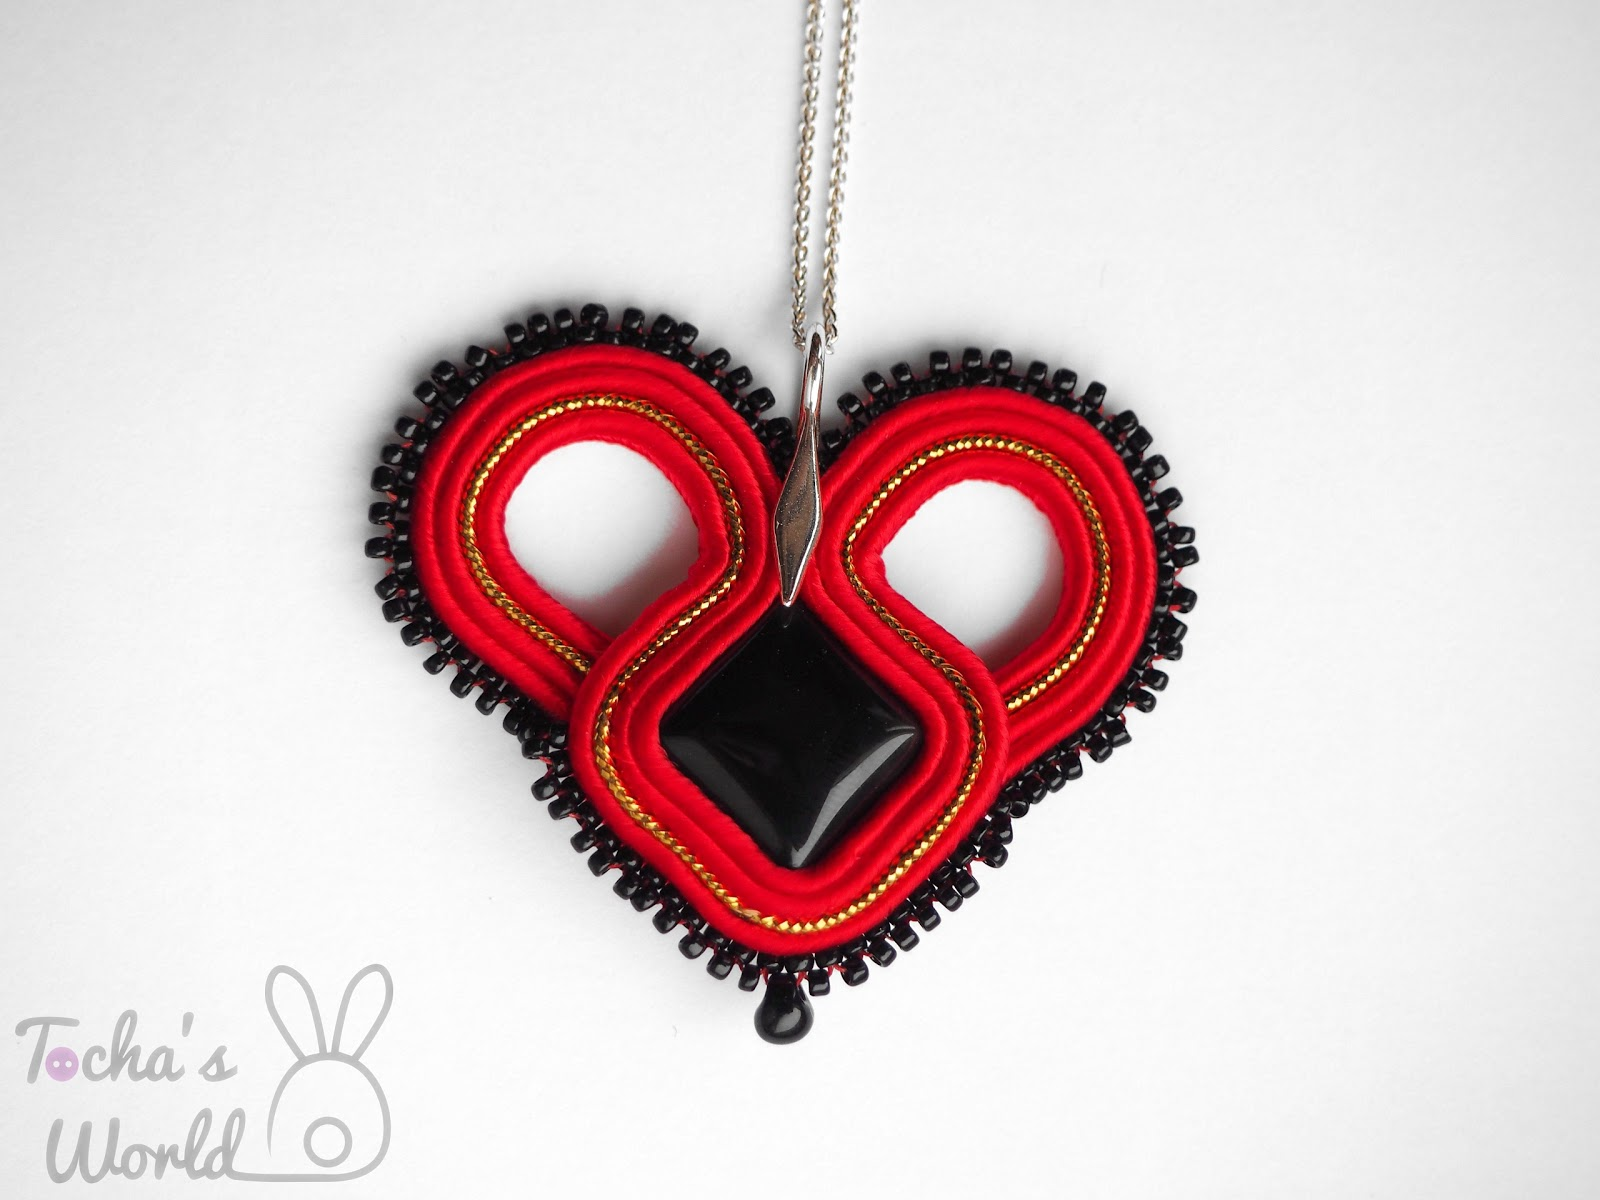 corazón, heart, pendant, strling silver, soutache, jewellery, Valentine's day, Art Village, art gallery, art, display, agate,